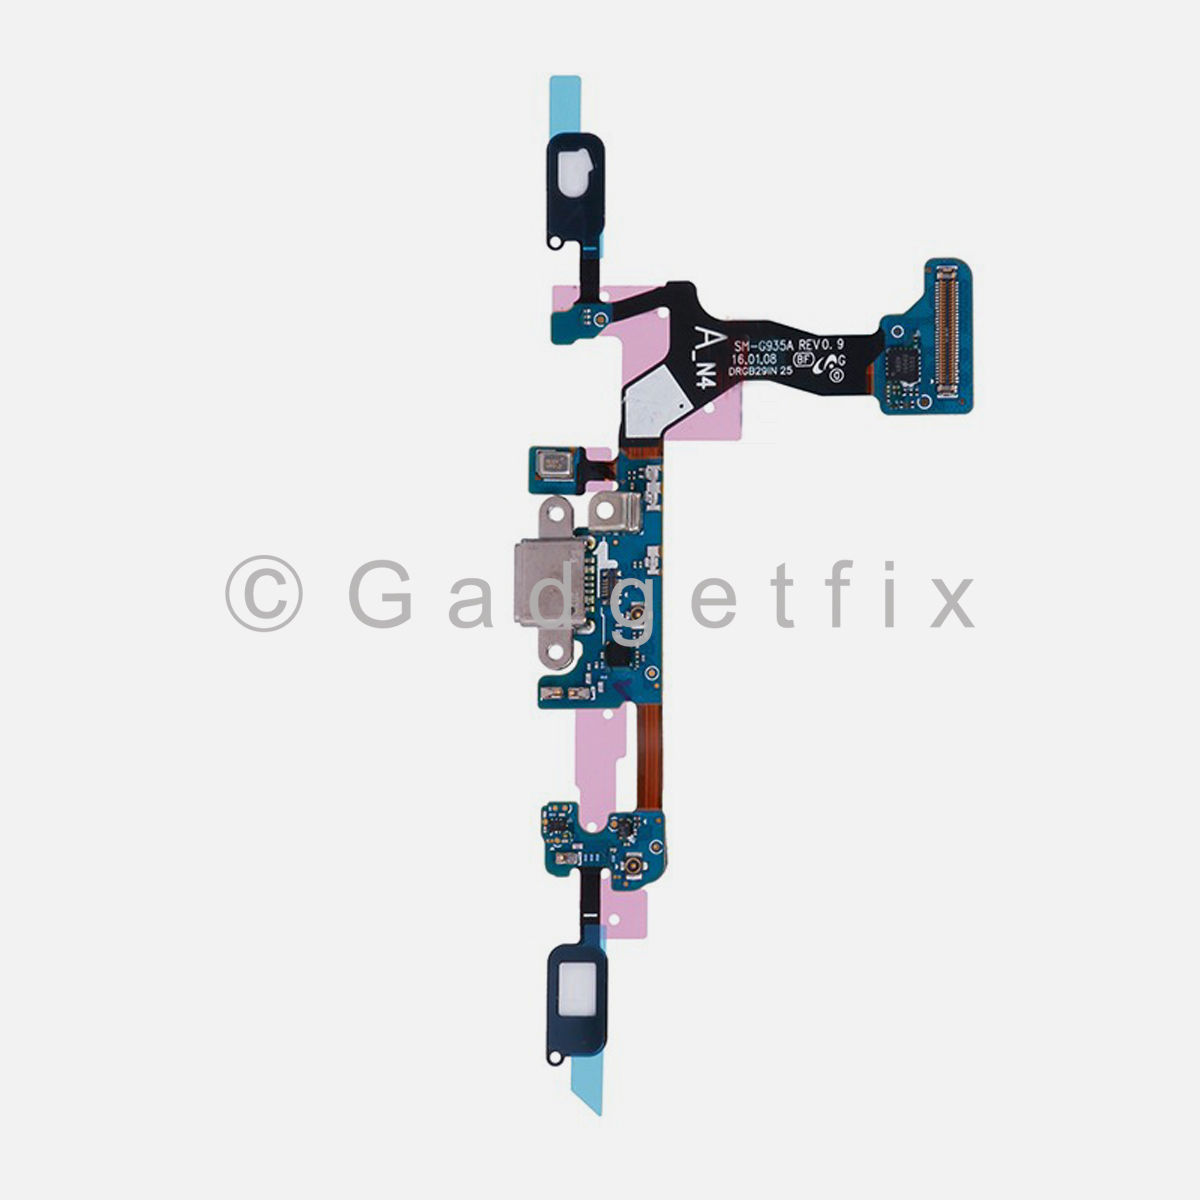 OEM Samsung Galaxy S7 Edge G935A G935T USB Charger Port Dock Keypad Flex Cable